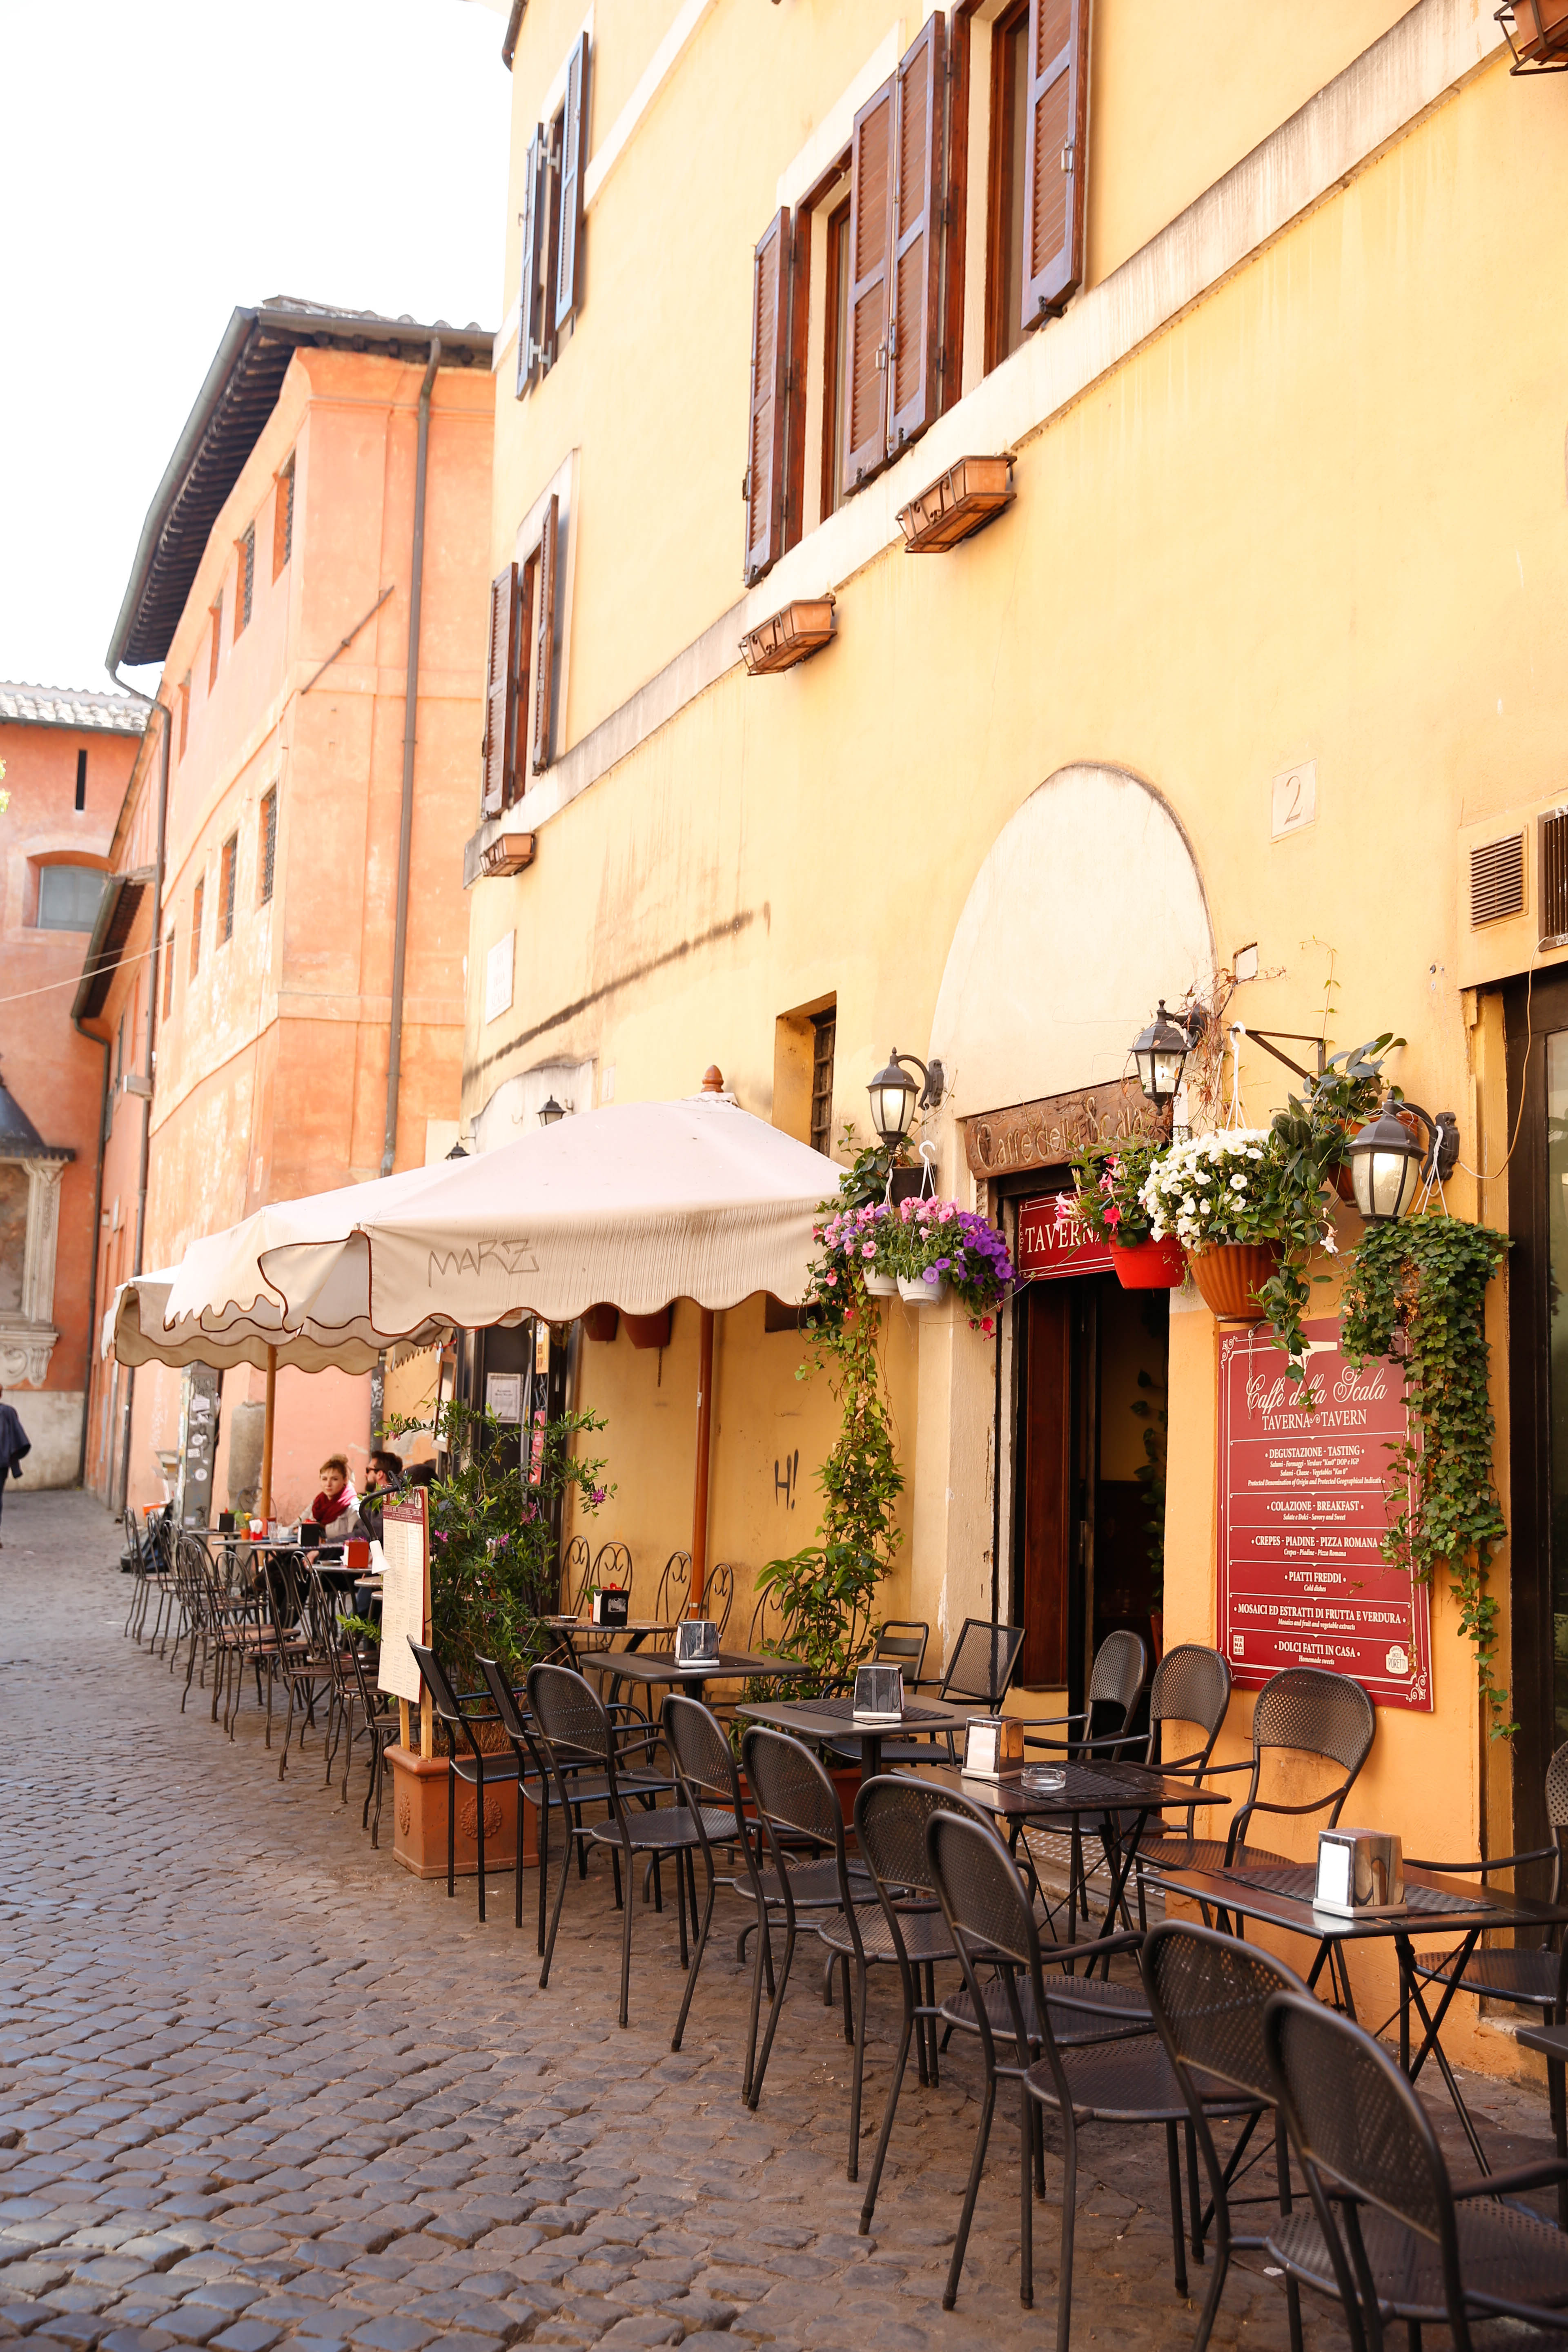 rome travel diary, rome restaurant, where to eat in rome